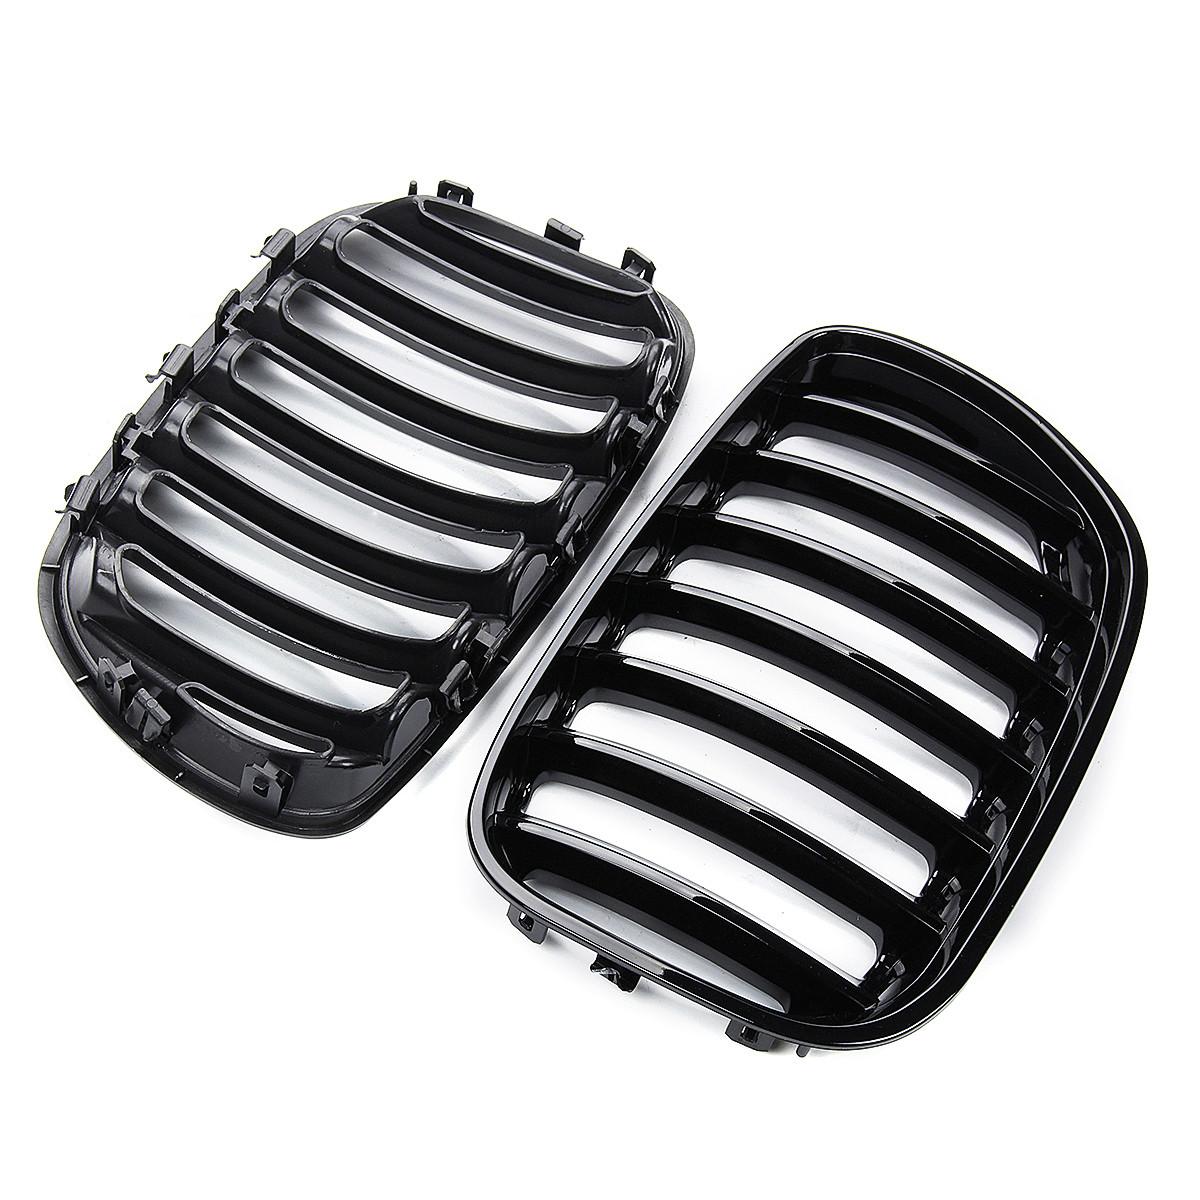 Image 3 - 2Pcs Gloss Black Car Front Kidney Grill Grilles Right & Left for BMW X5 E53 2004 2005 2006 ABS 51137124815 51137124816-in Racing Grills from Automobiles & Motorcycles